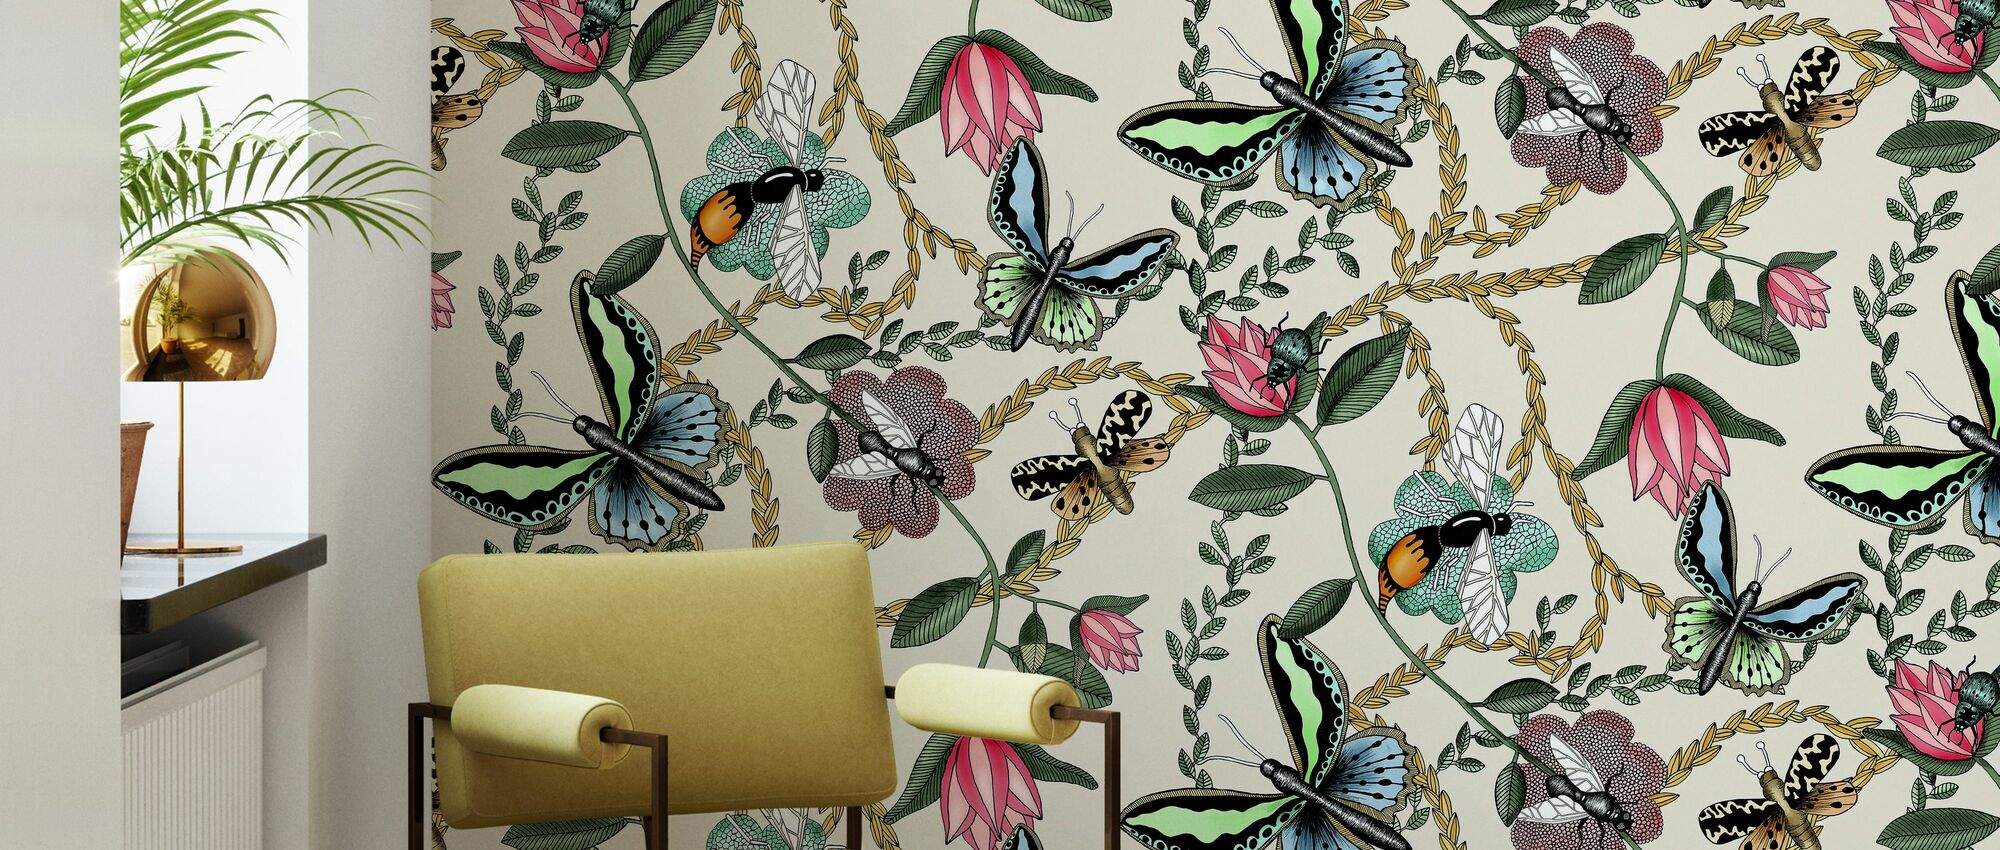 Bugs & Butterflies Offwhite & - Large - Wallpaper - Living Room